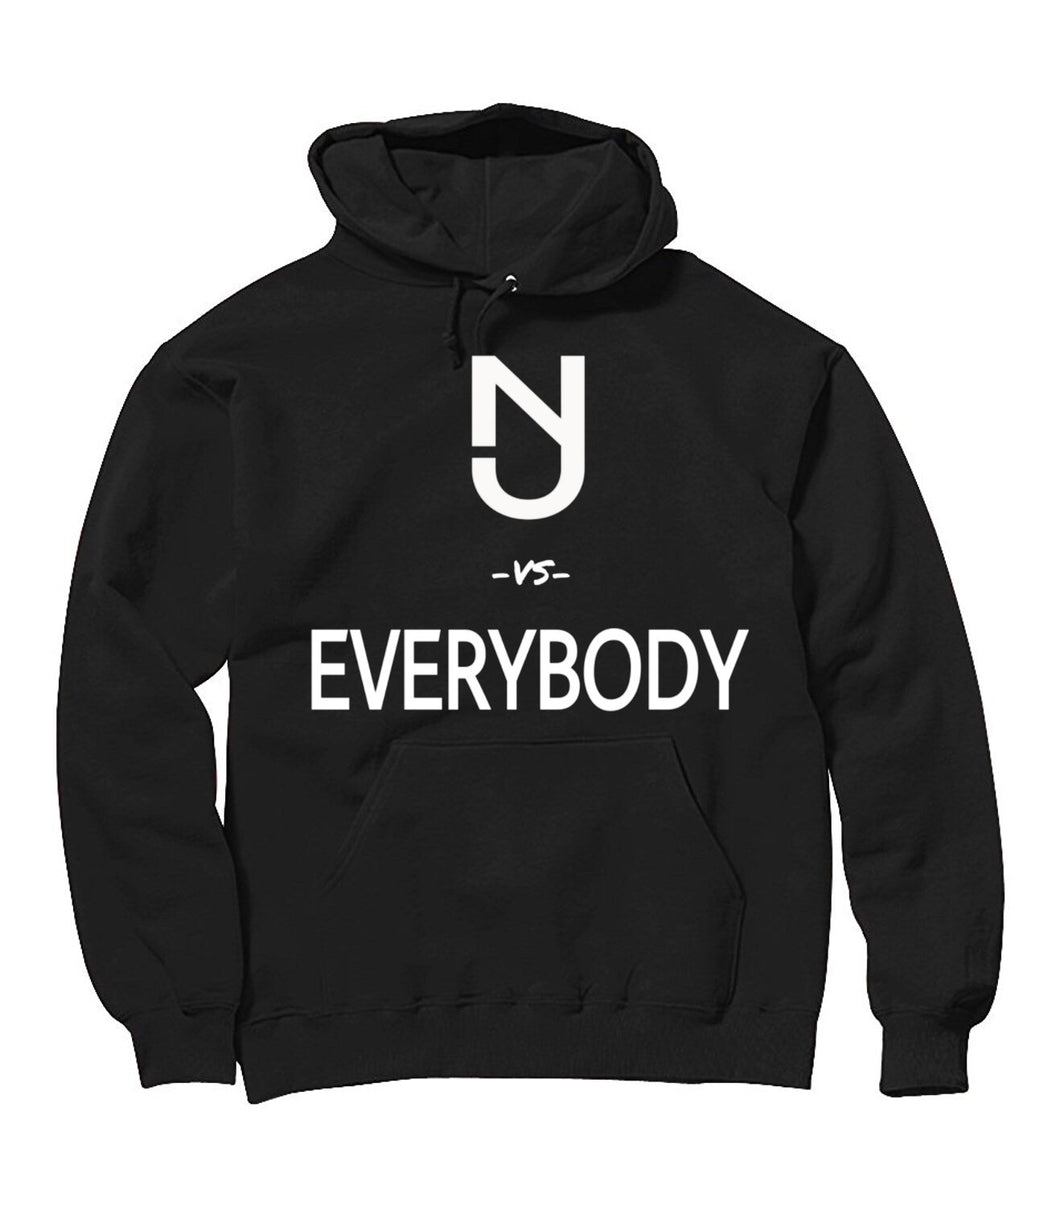 NJ vs Everybody Hoodie